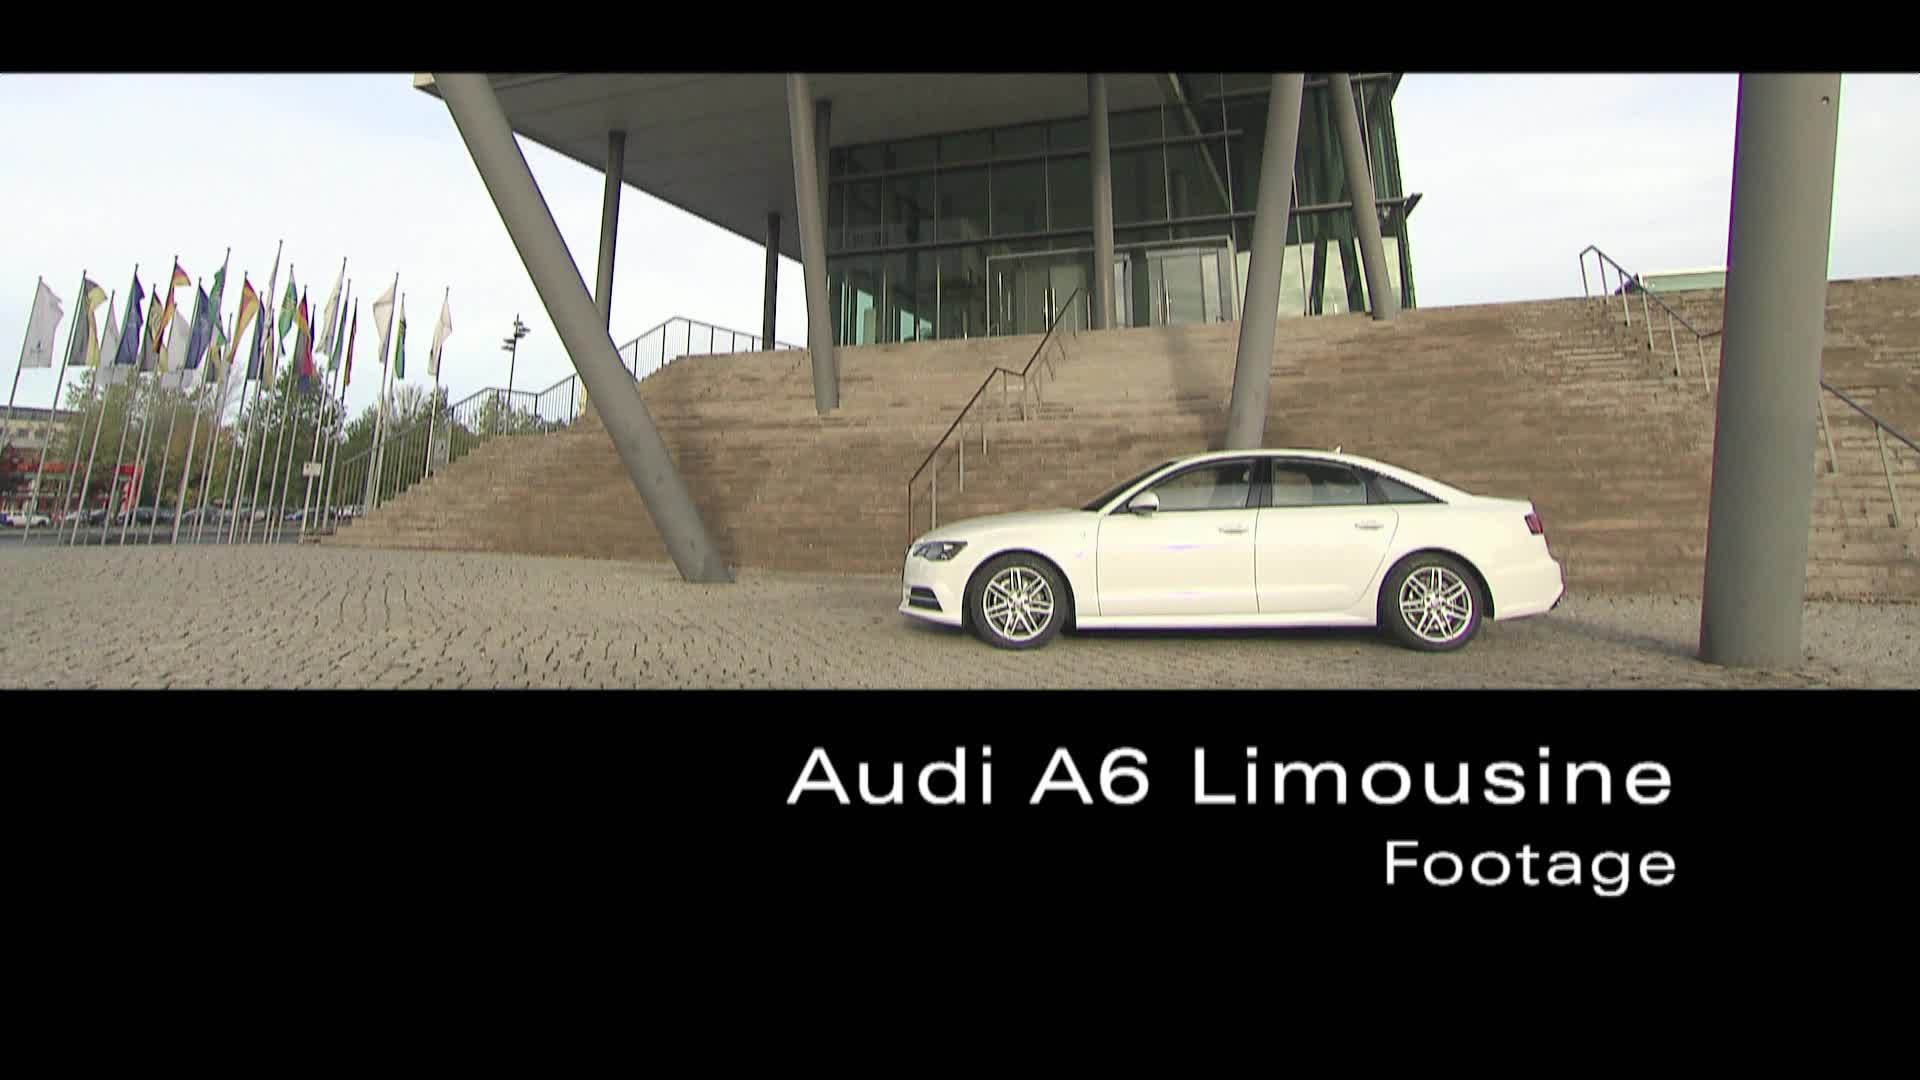 Die A6 Limousine - Footage